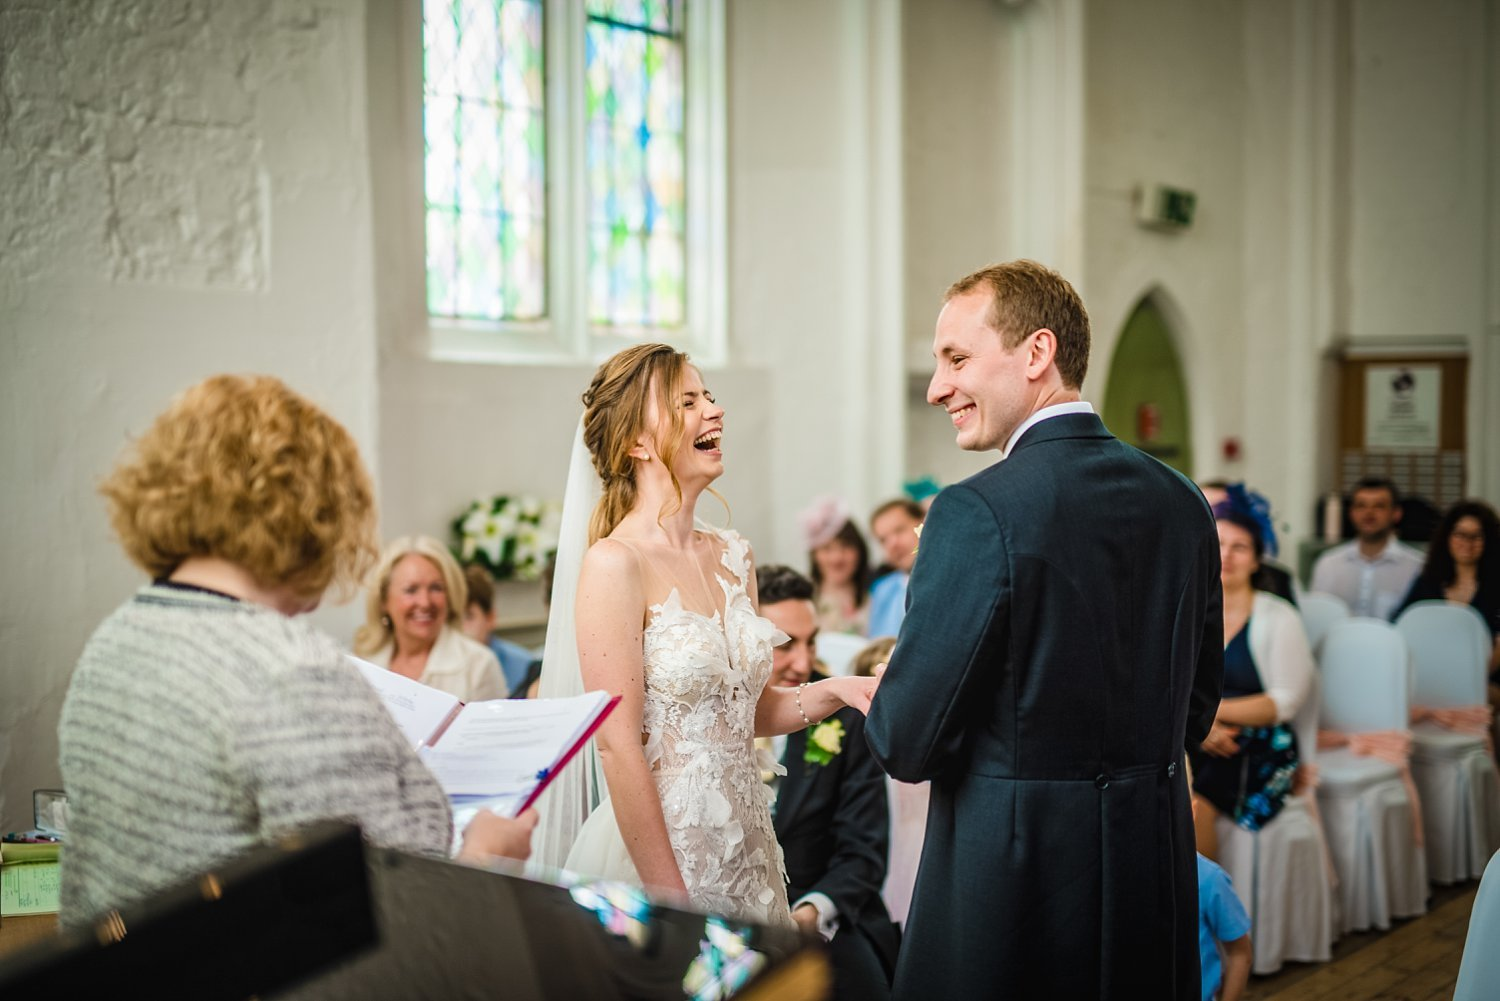 Fun-Filled wedding in Pembroke Lodge - exchange of rings, bride and groom are laughing